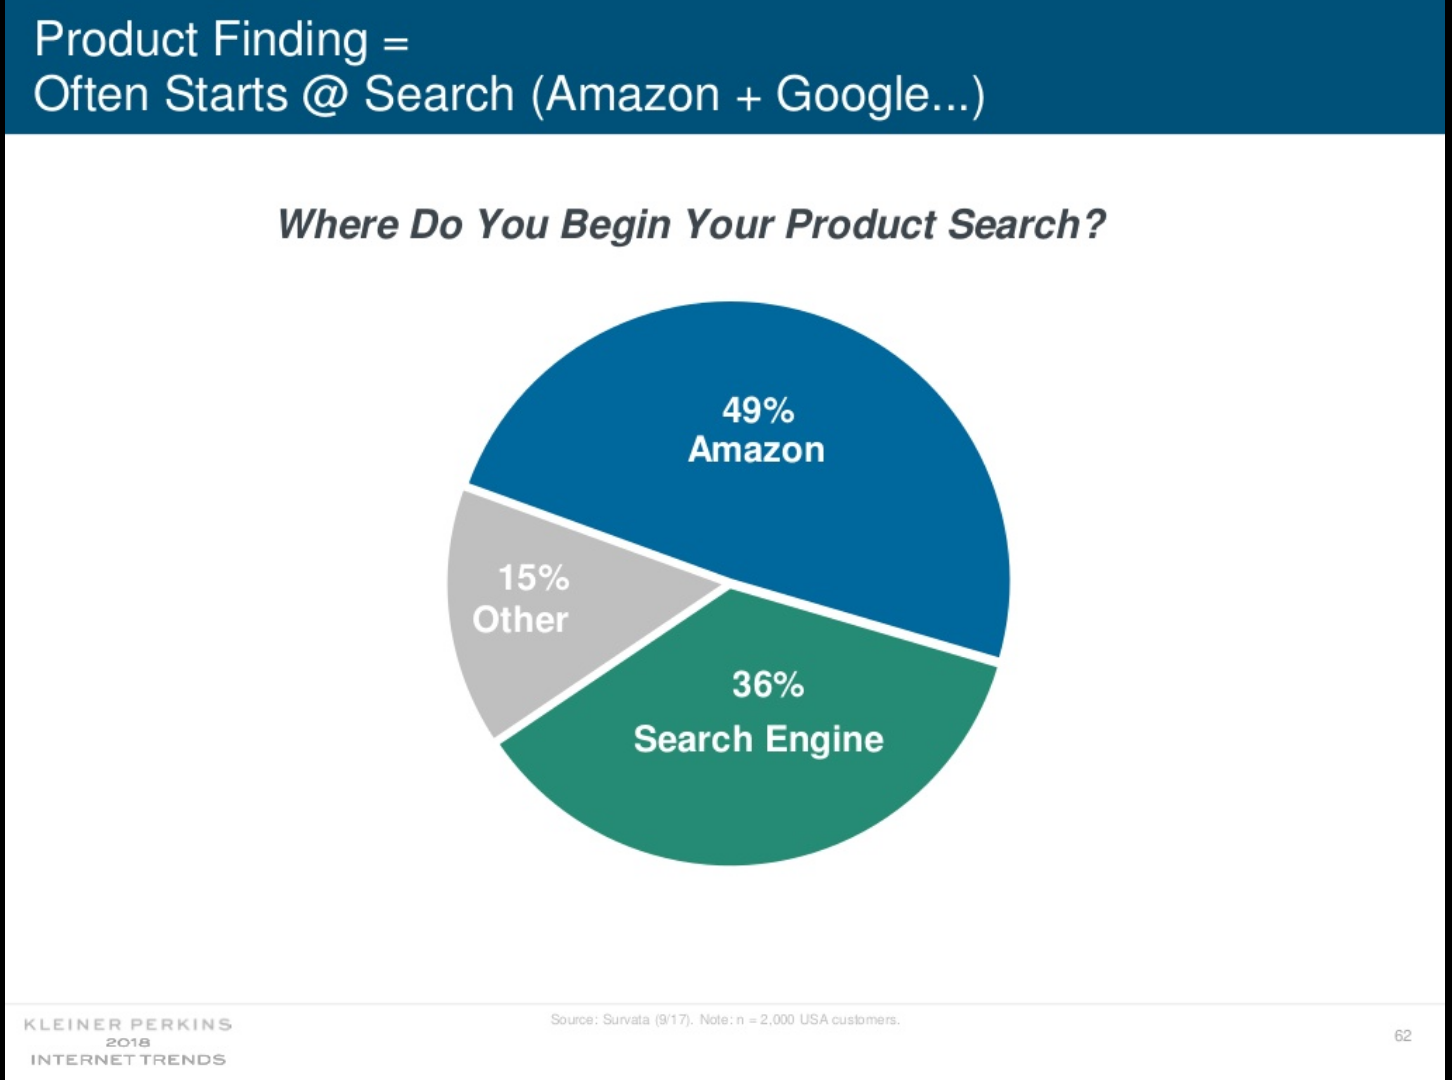 Slide 62 from Kleiner Perkins Caufield & Byers' Internet Trends 2018 report suggests that nearly half of U.S. consumers start their product searches on Amazon.